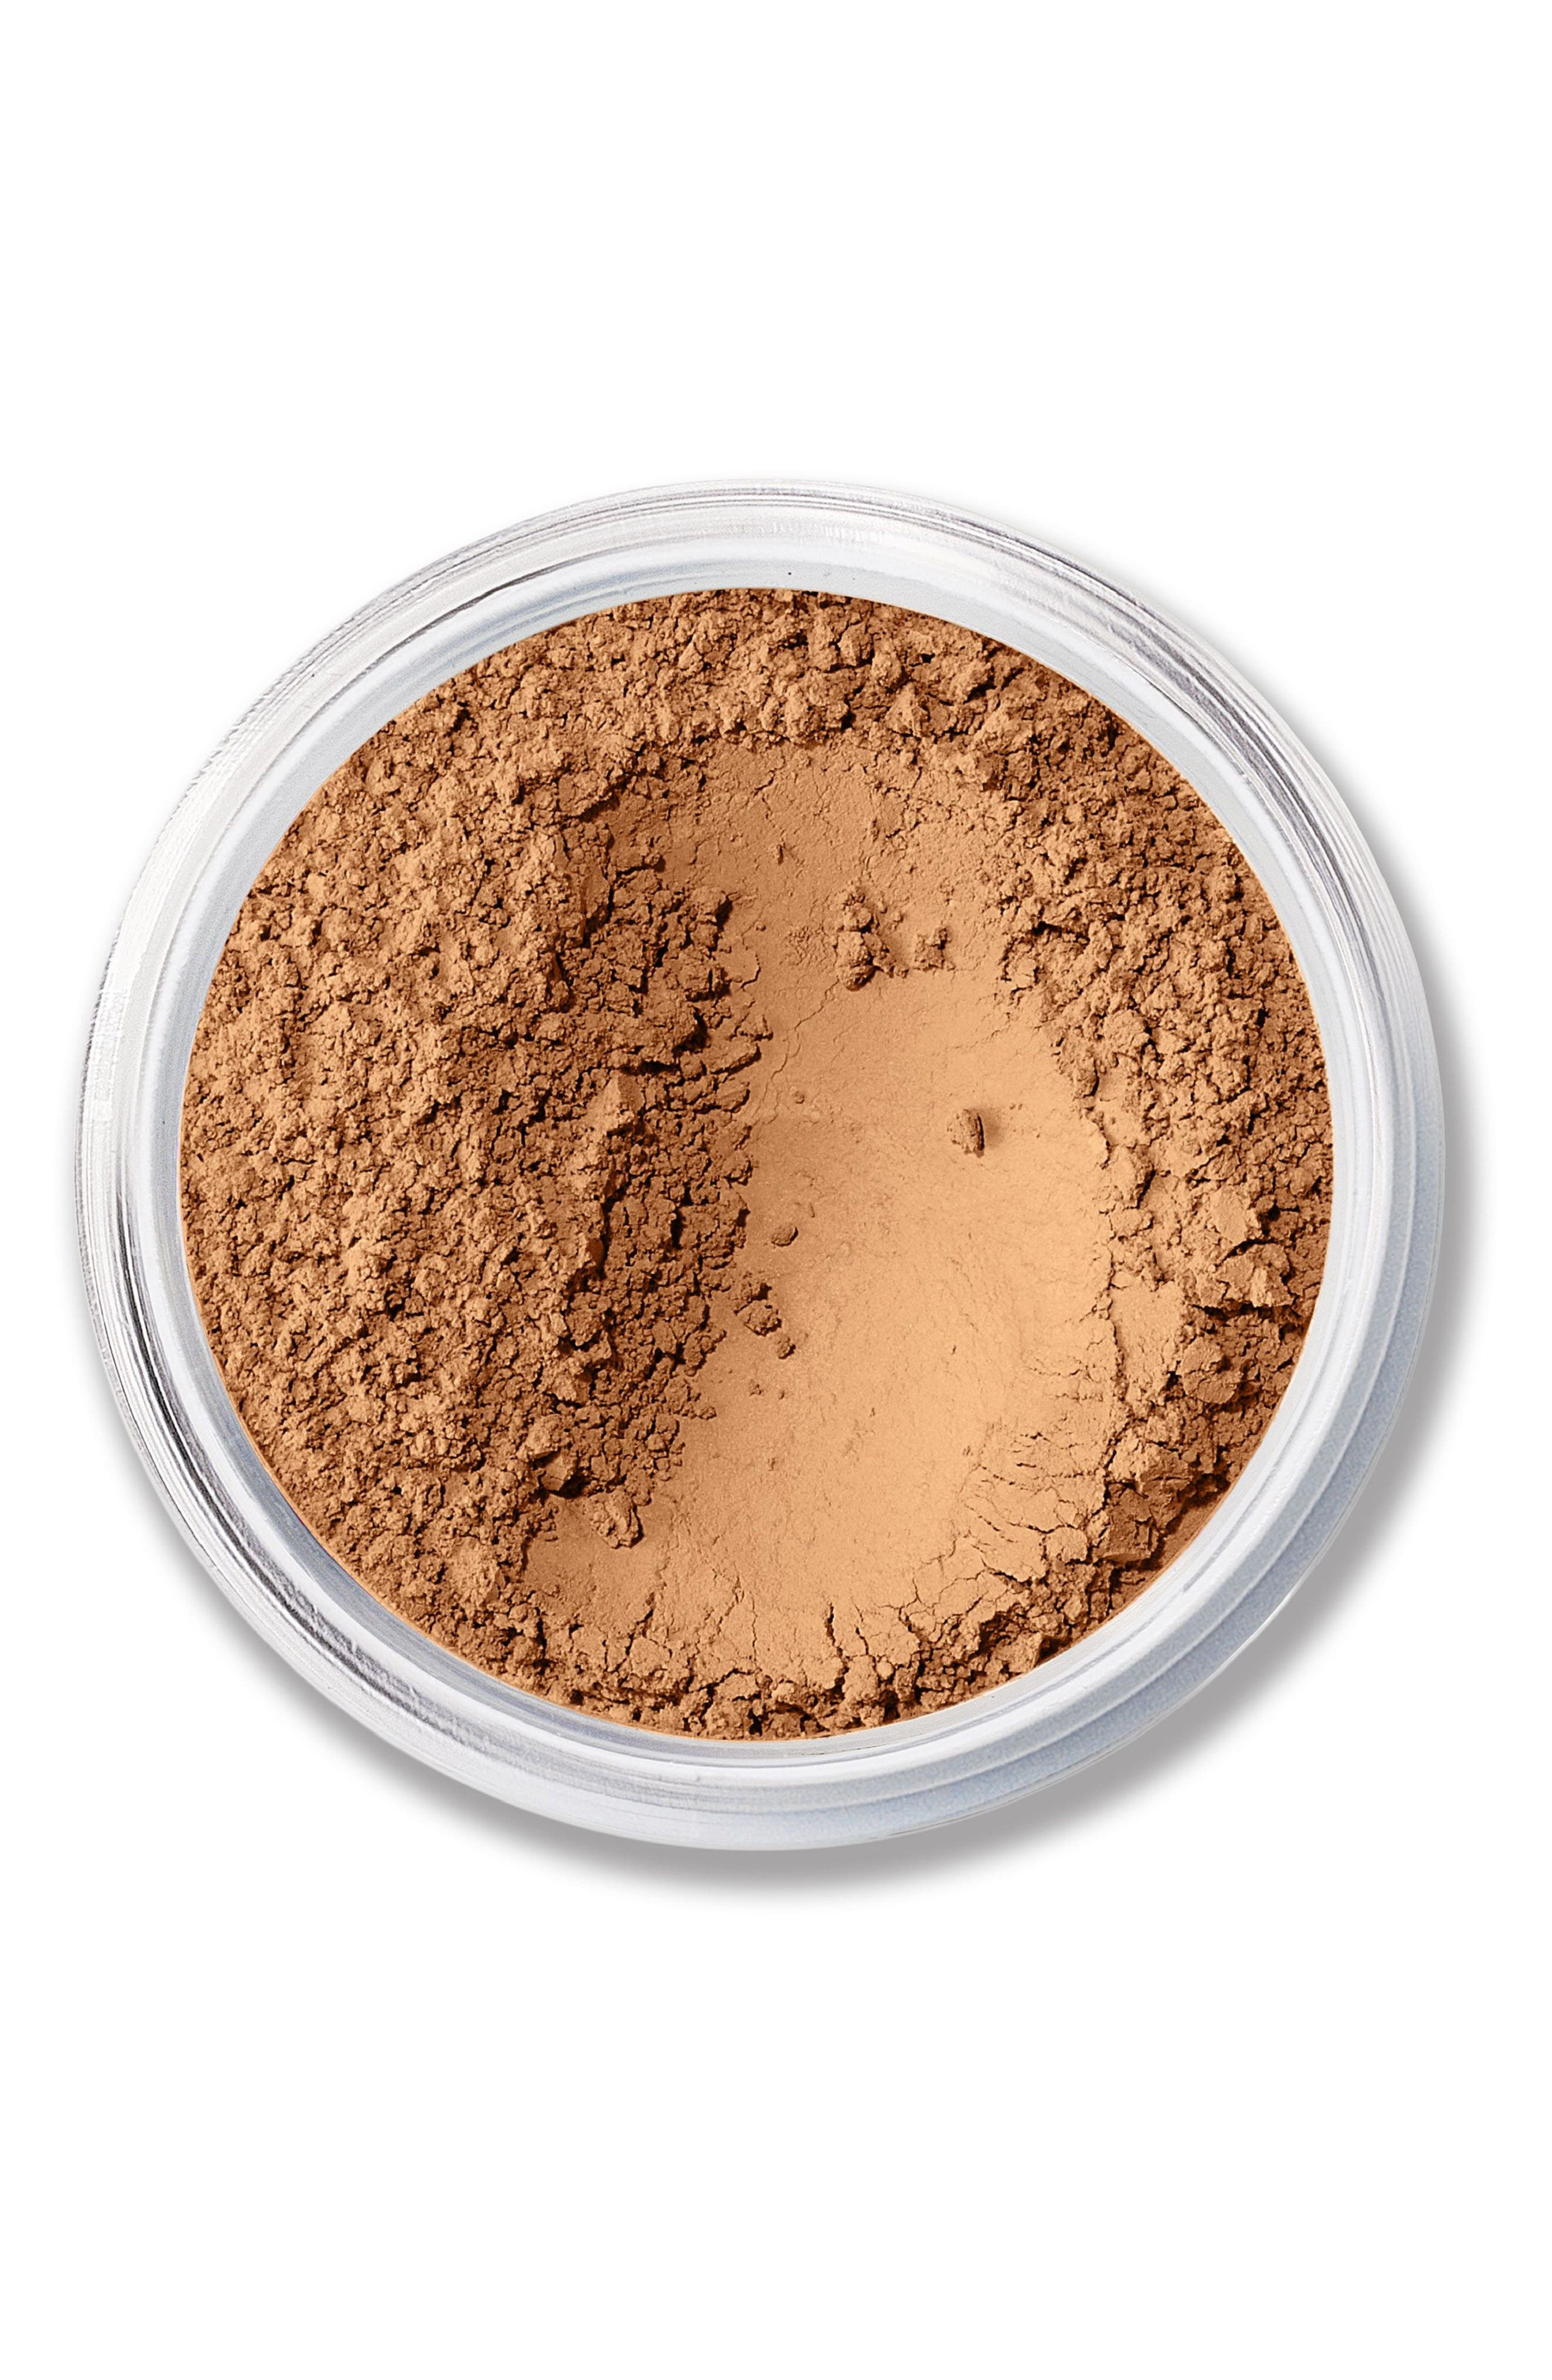 Main Image - bareMinerals® Original Foundation SPF 15